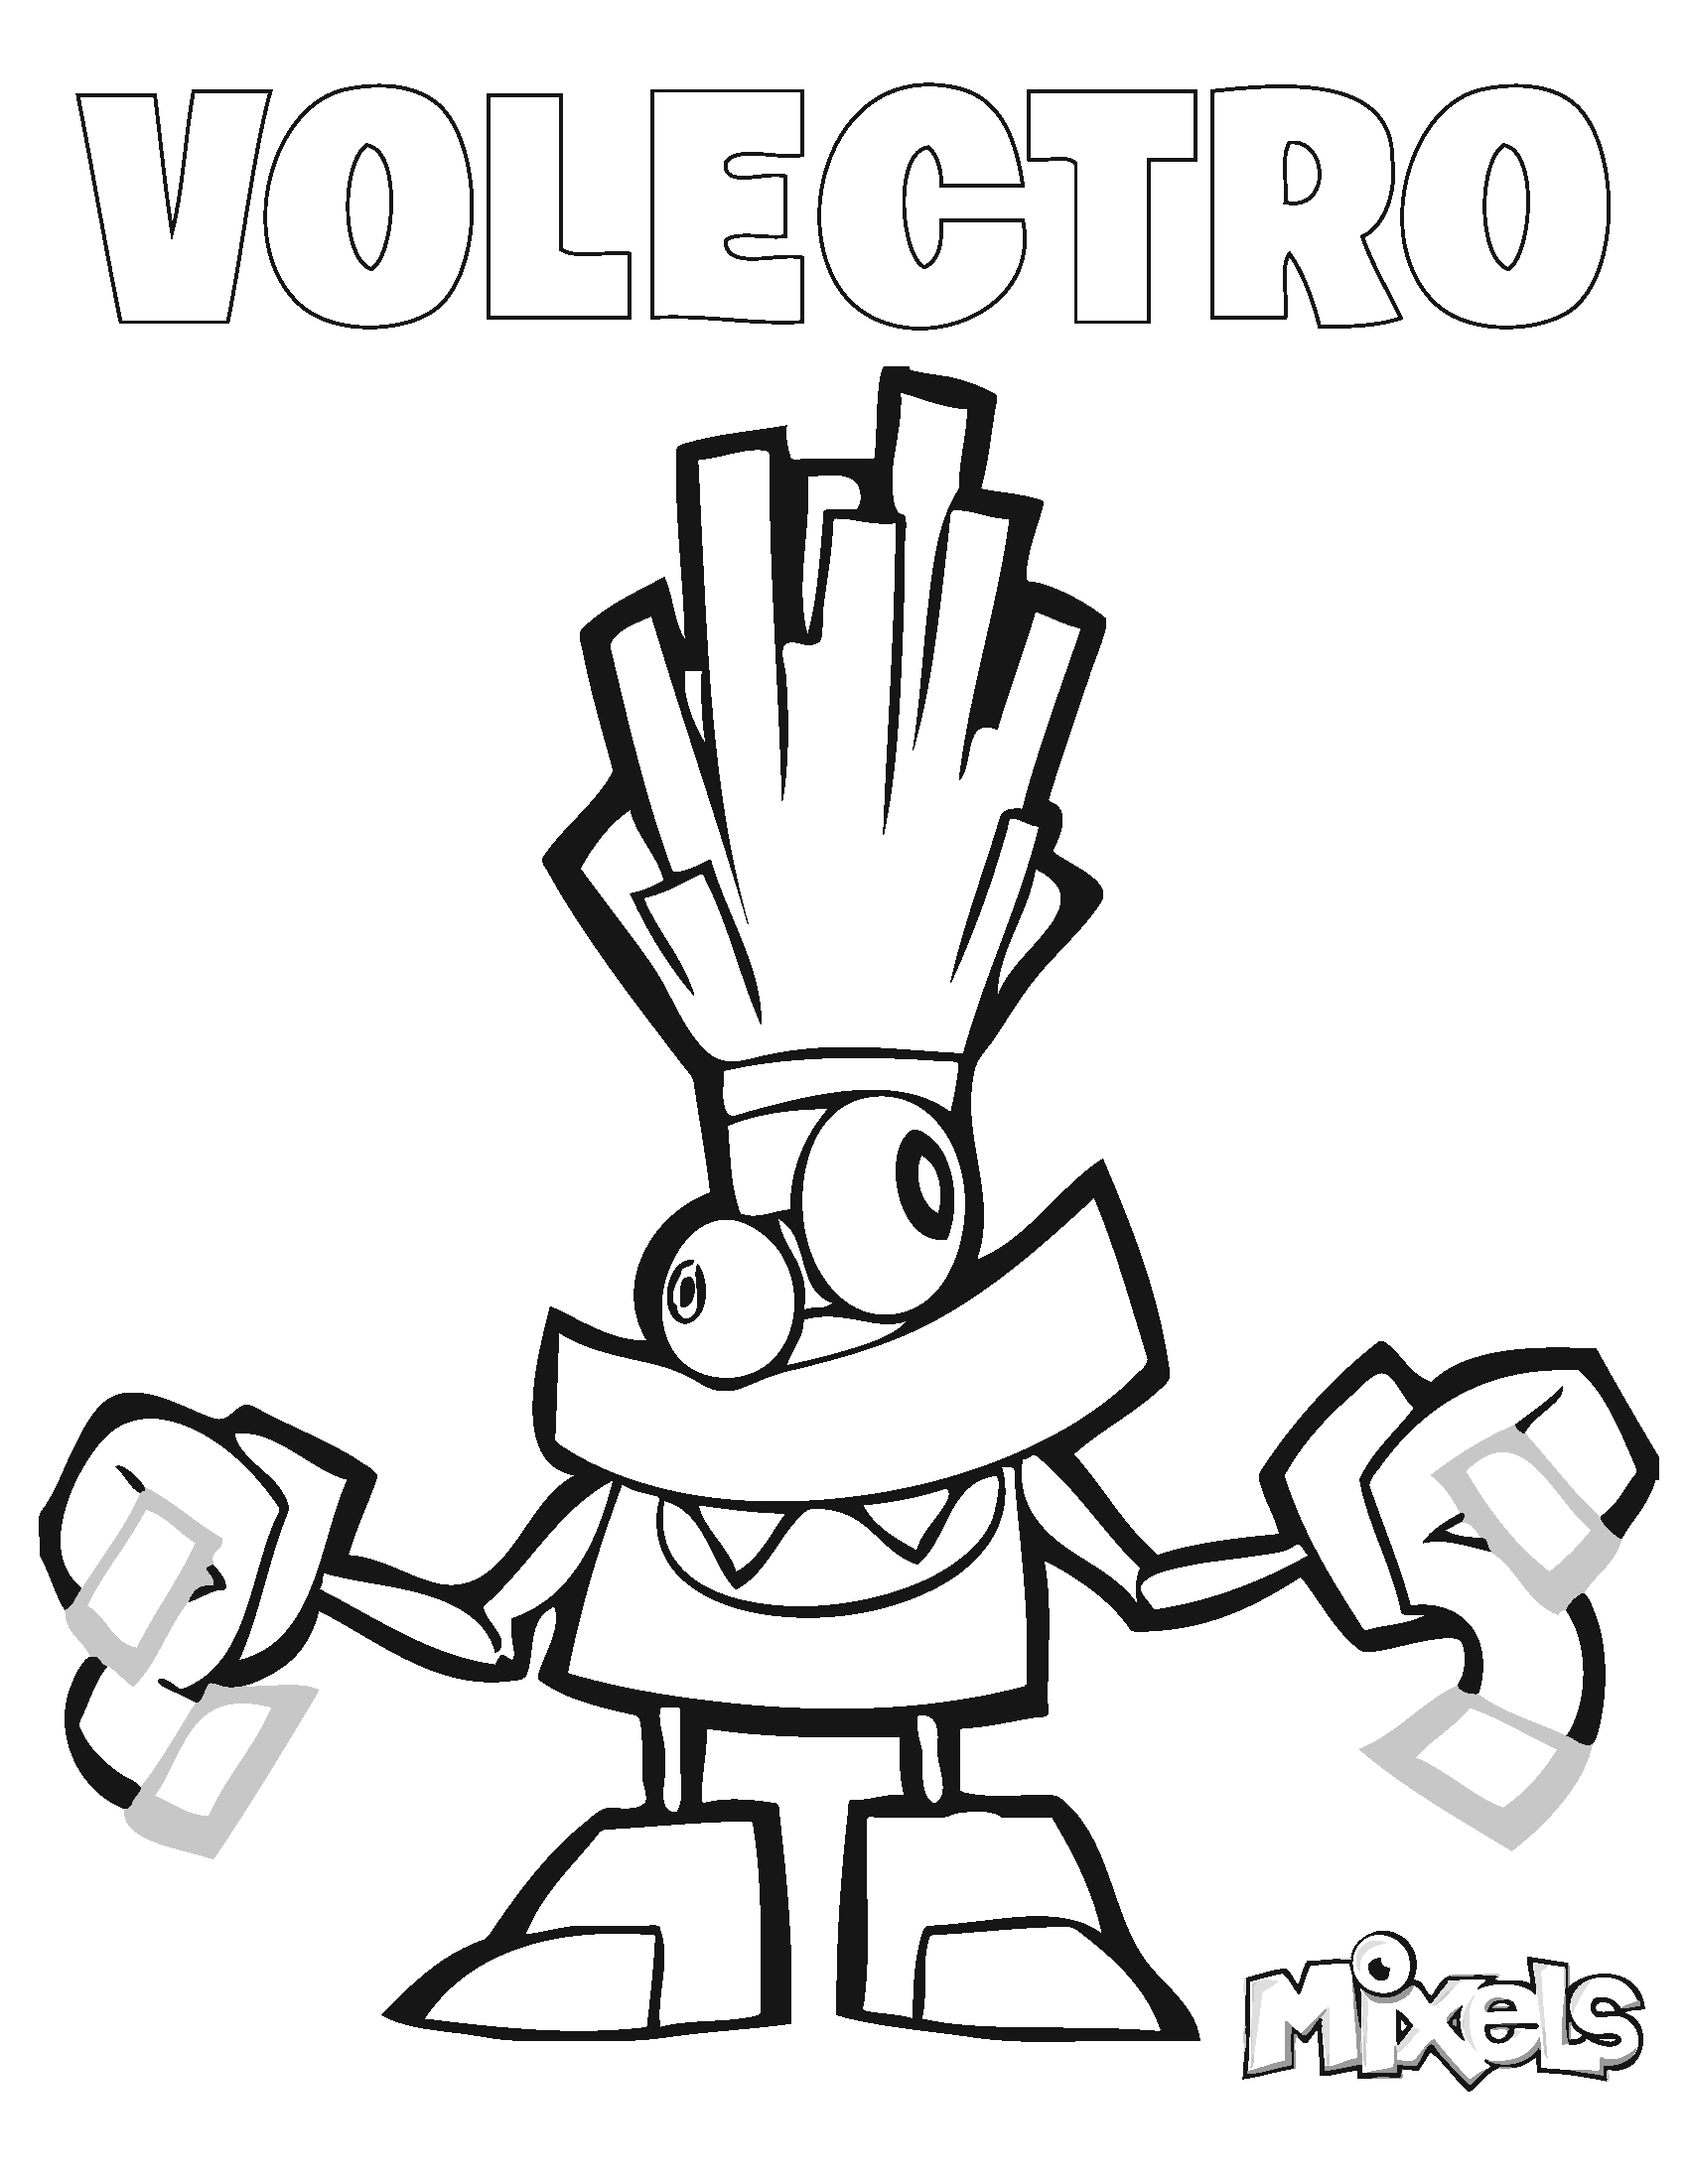 mixels coloring pages to print - photo#6